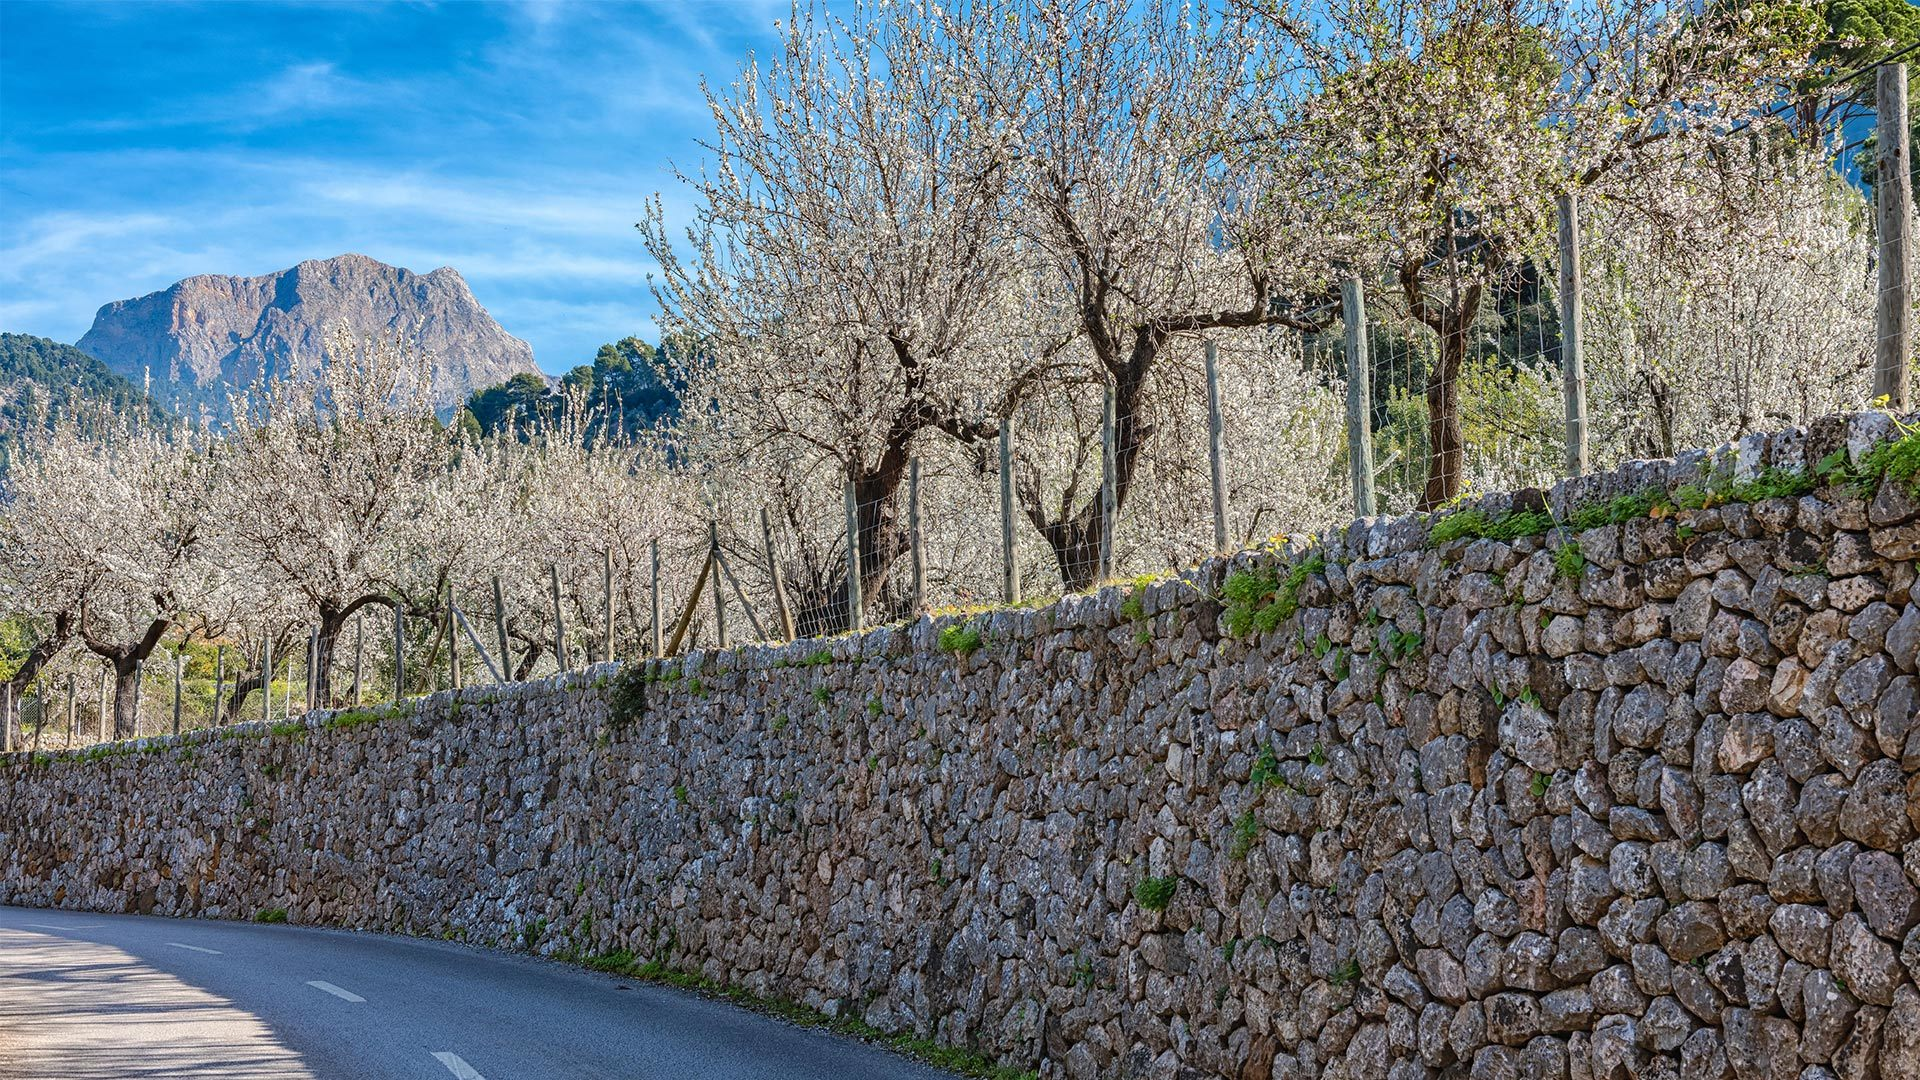 Almond Blossom Photo Contest Mallorca Gary Lloys Rees min